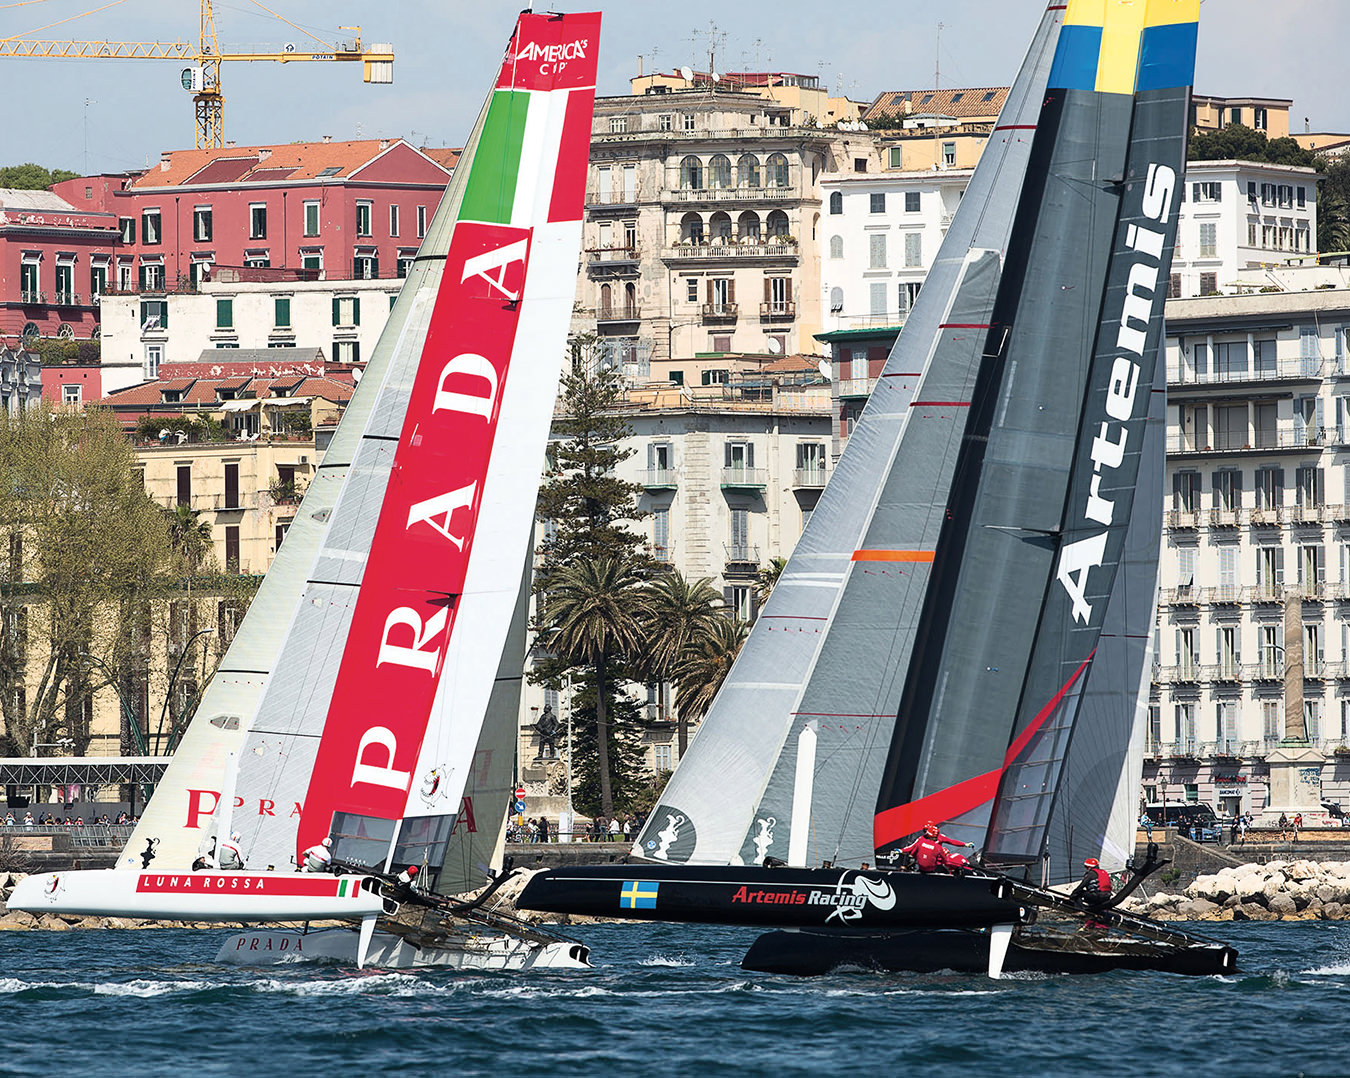 NUVO Magazine: America's Cup